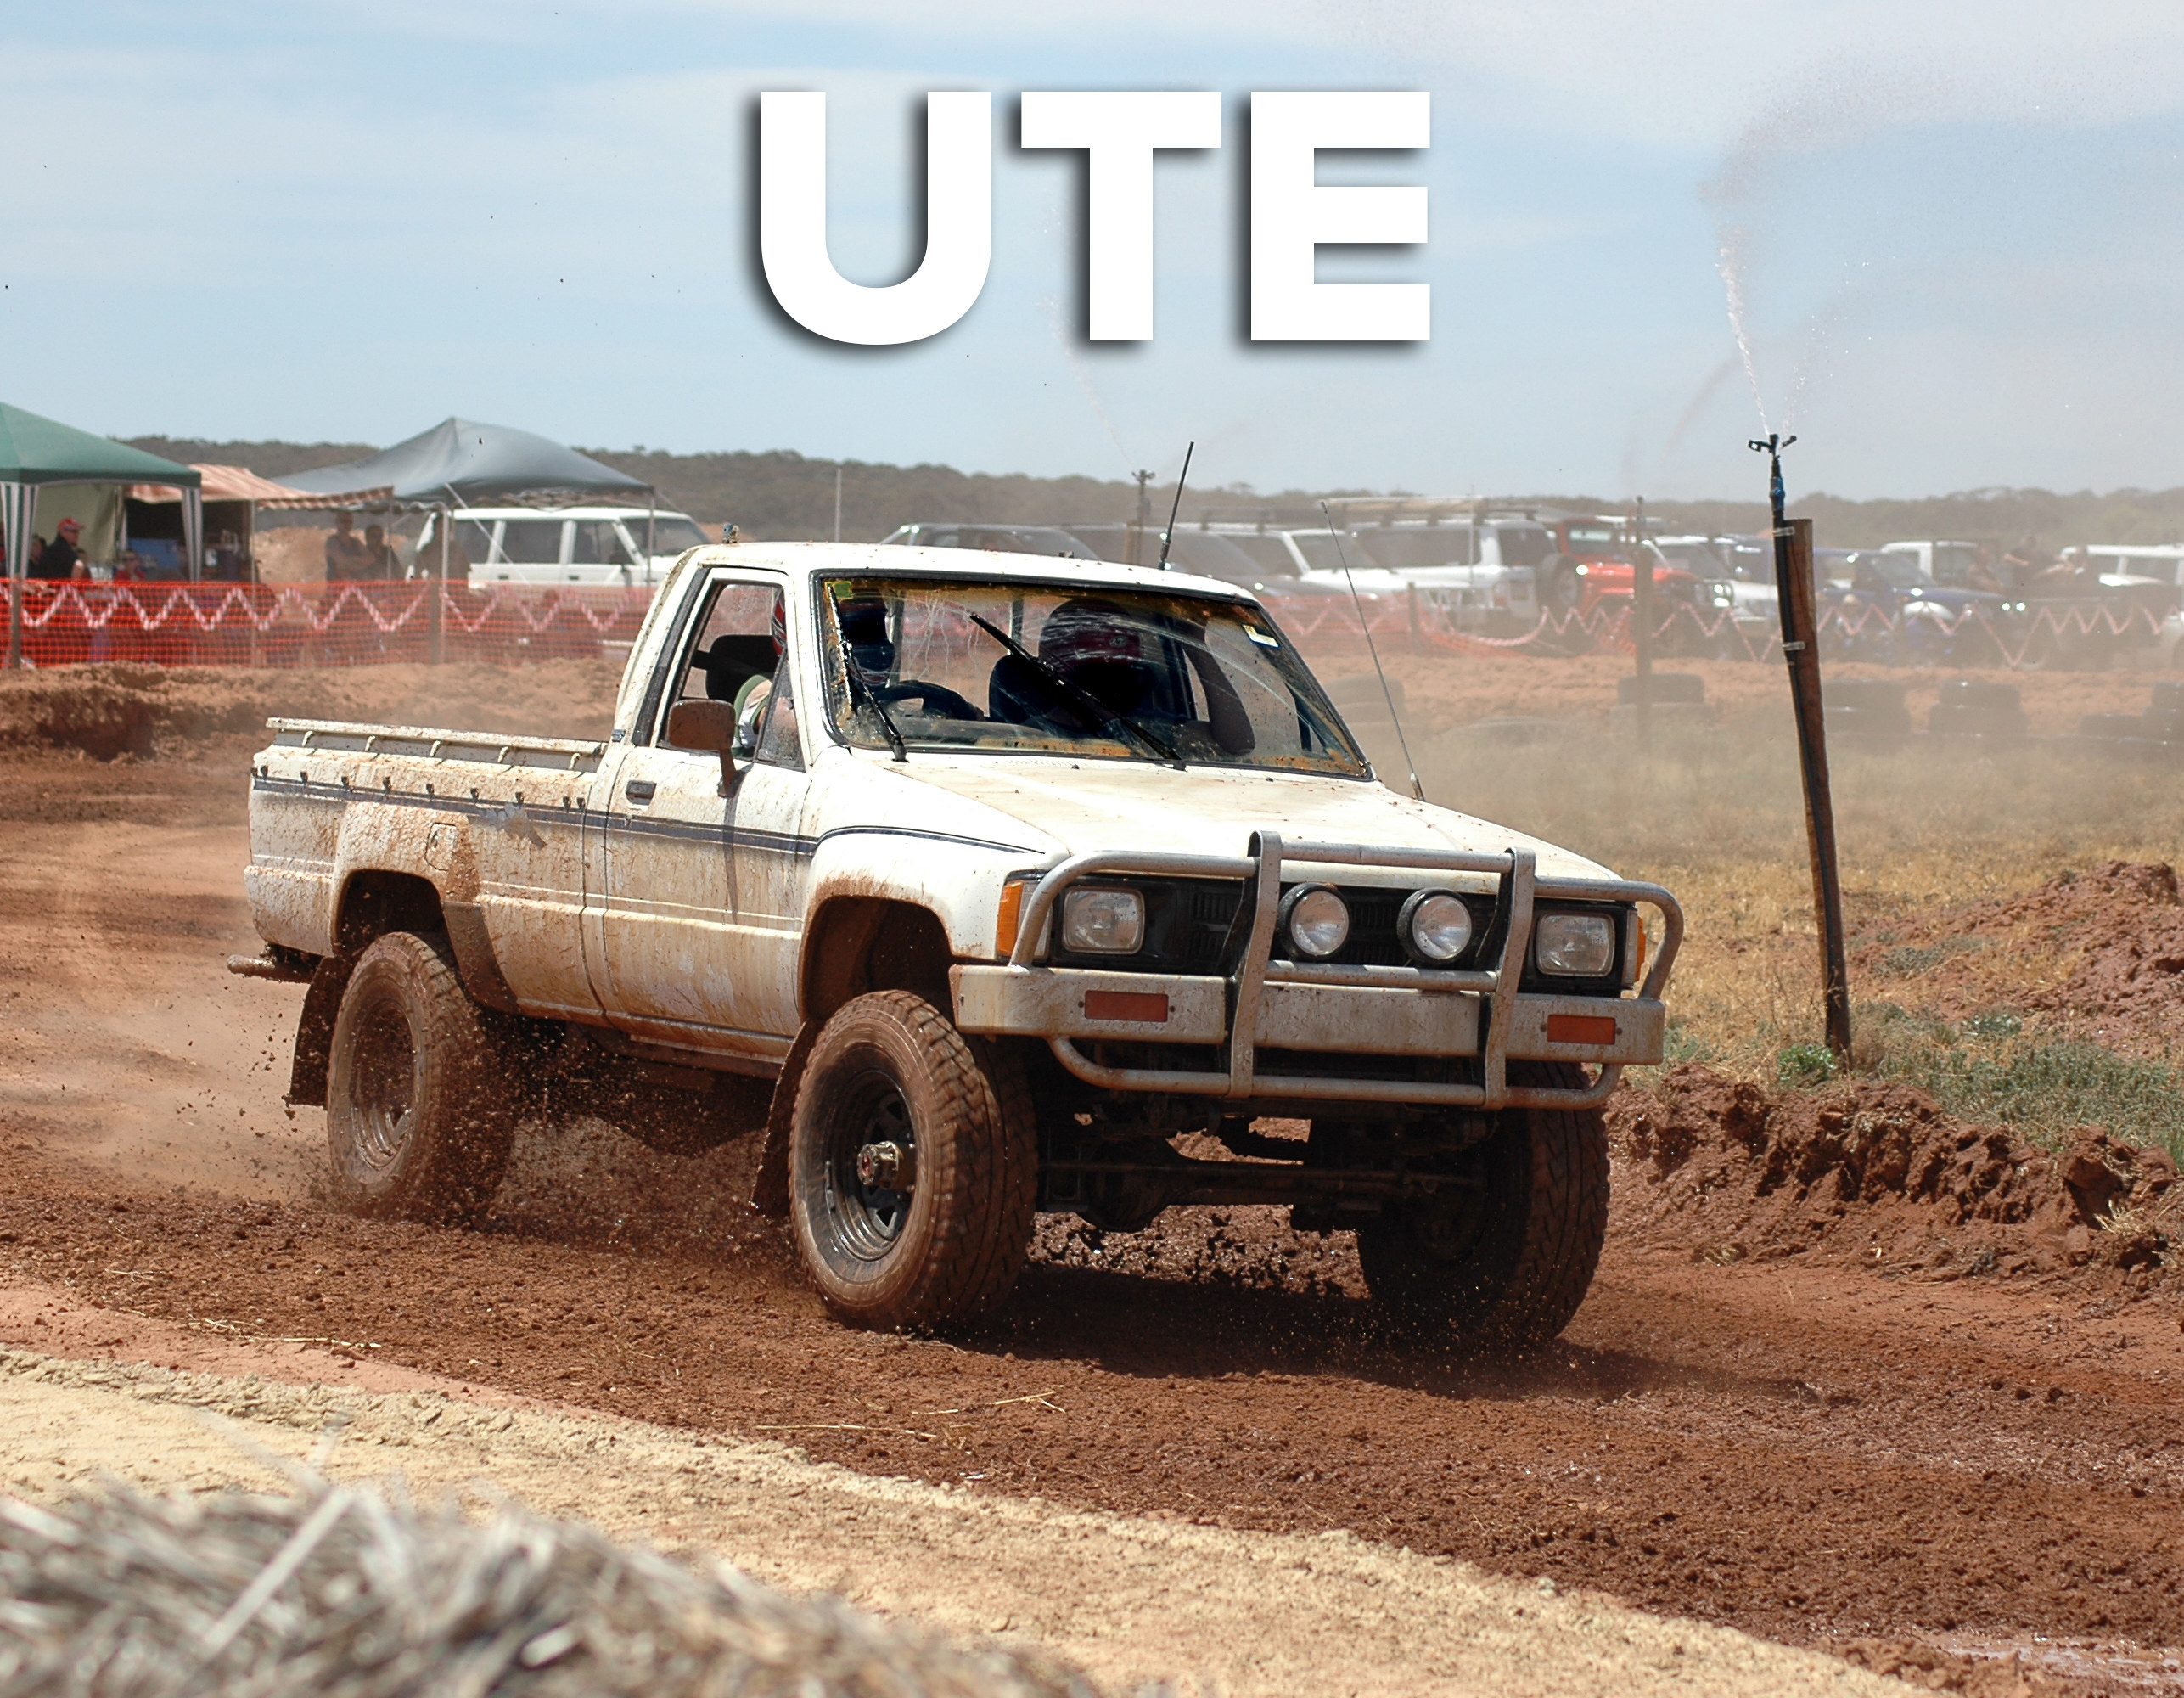 A utility truck (ute) parked on a dirt road